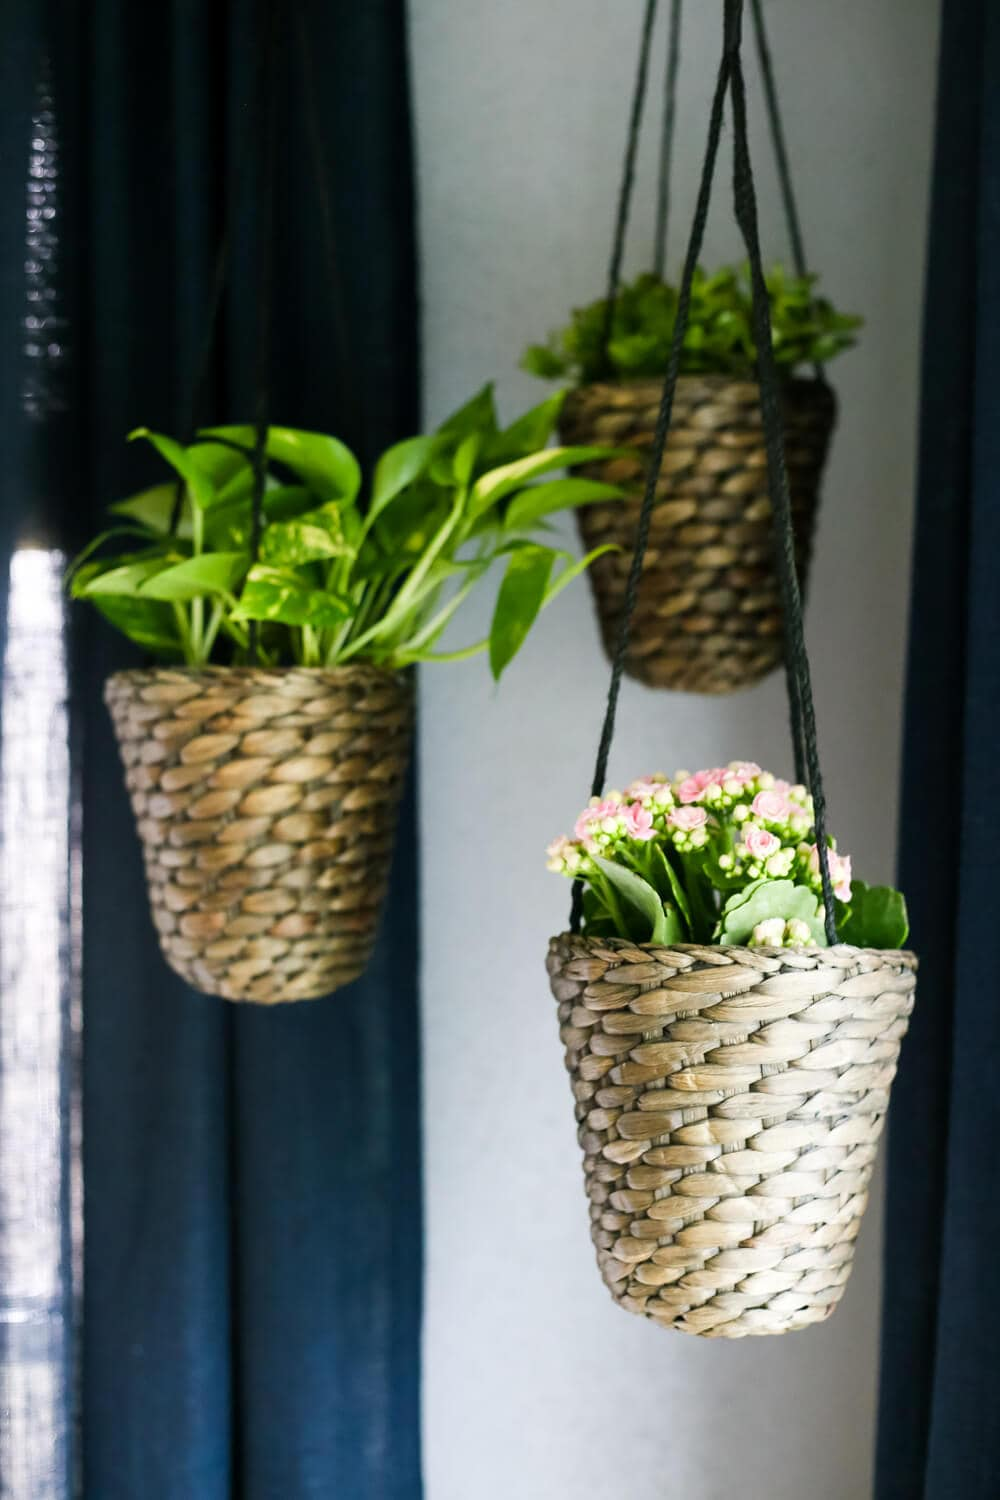 DIY Indoor Hanging Planters // & Renovations on urban outfitters planters, metal planters, garden ridge planters, west elm planters, sam's club planters, costco planters, flower planters, modern white planters, mr planters, home depot planters, dollar general planters, dollar tree planters,